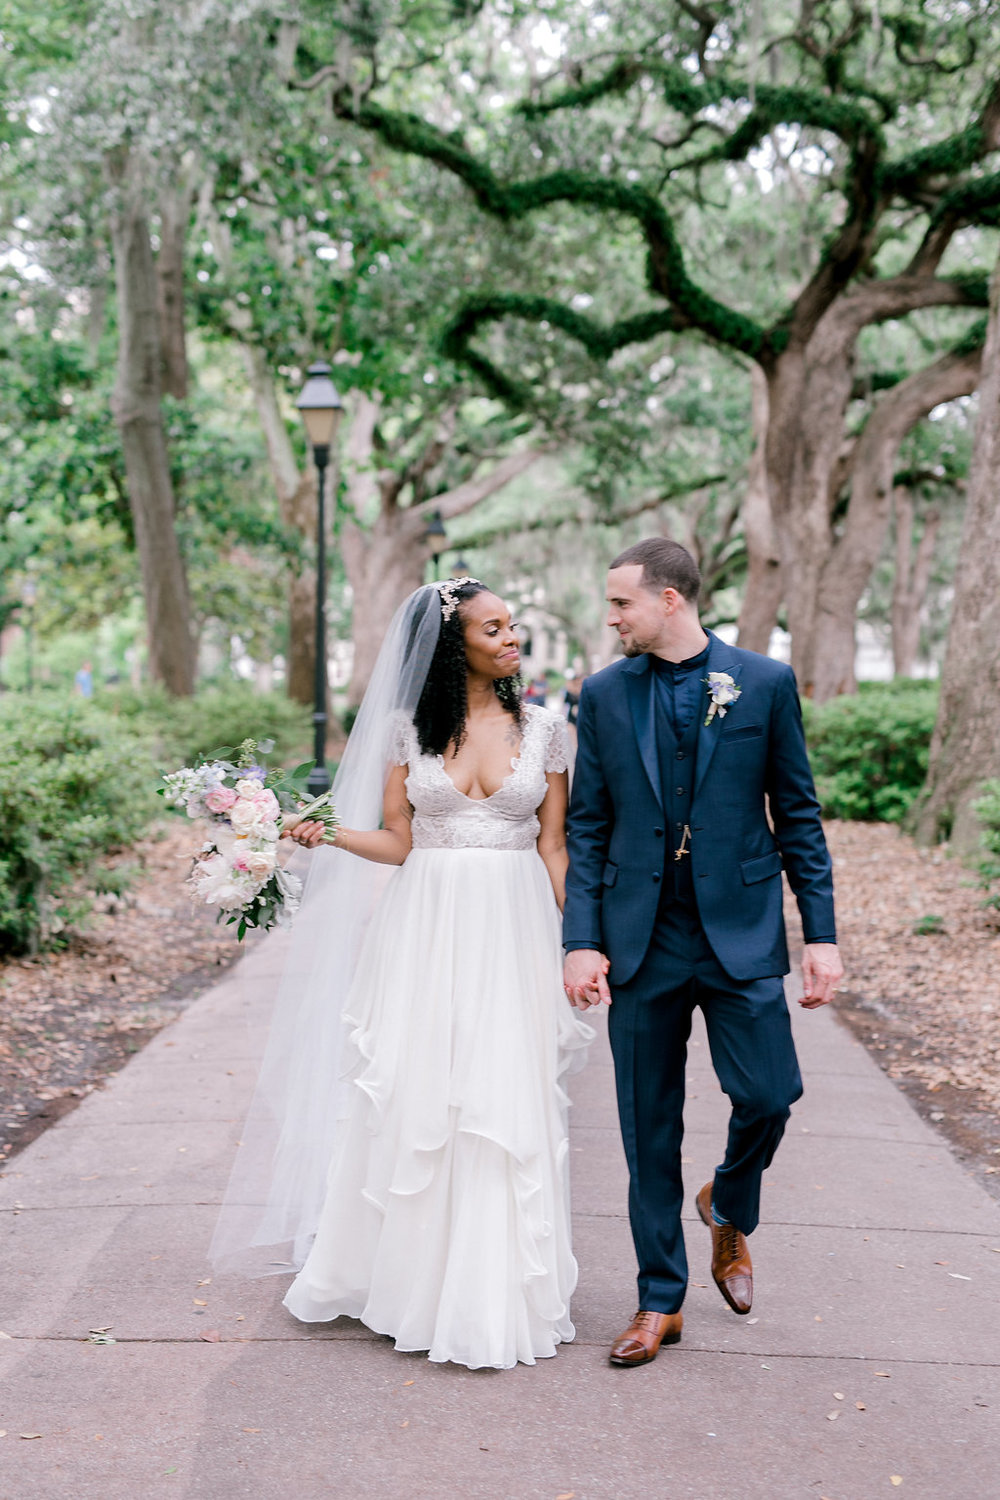 savannah-bridal-shop-i-and-b-florals-sonya-and-josh-colorful-rustic-boho-wedding-florals-at-soho-south-cafe-savannah-ga-wedding-danielle-george-photography-11.JPG